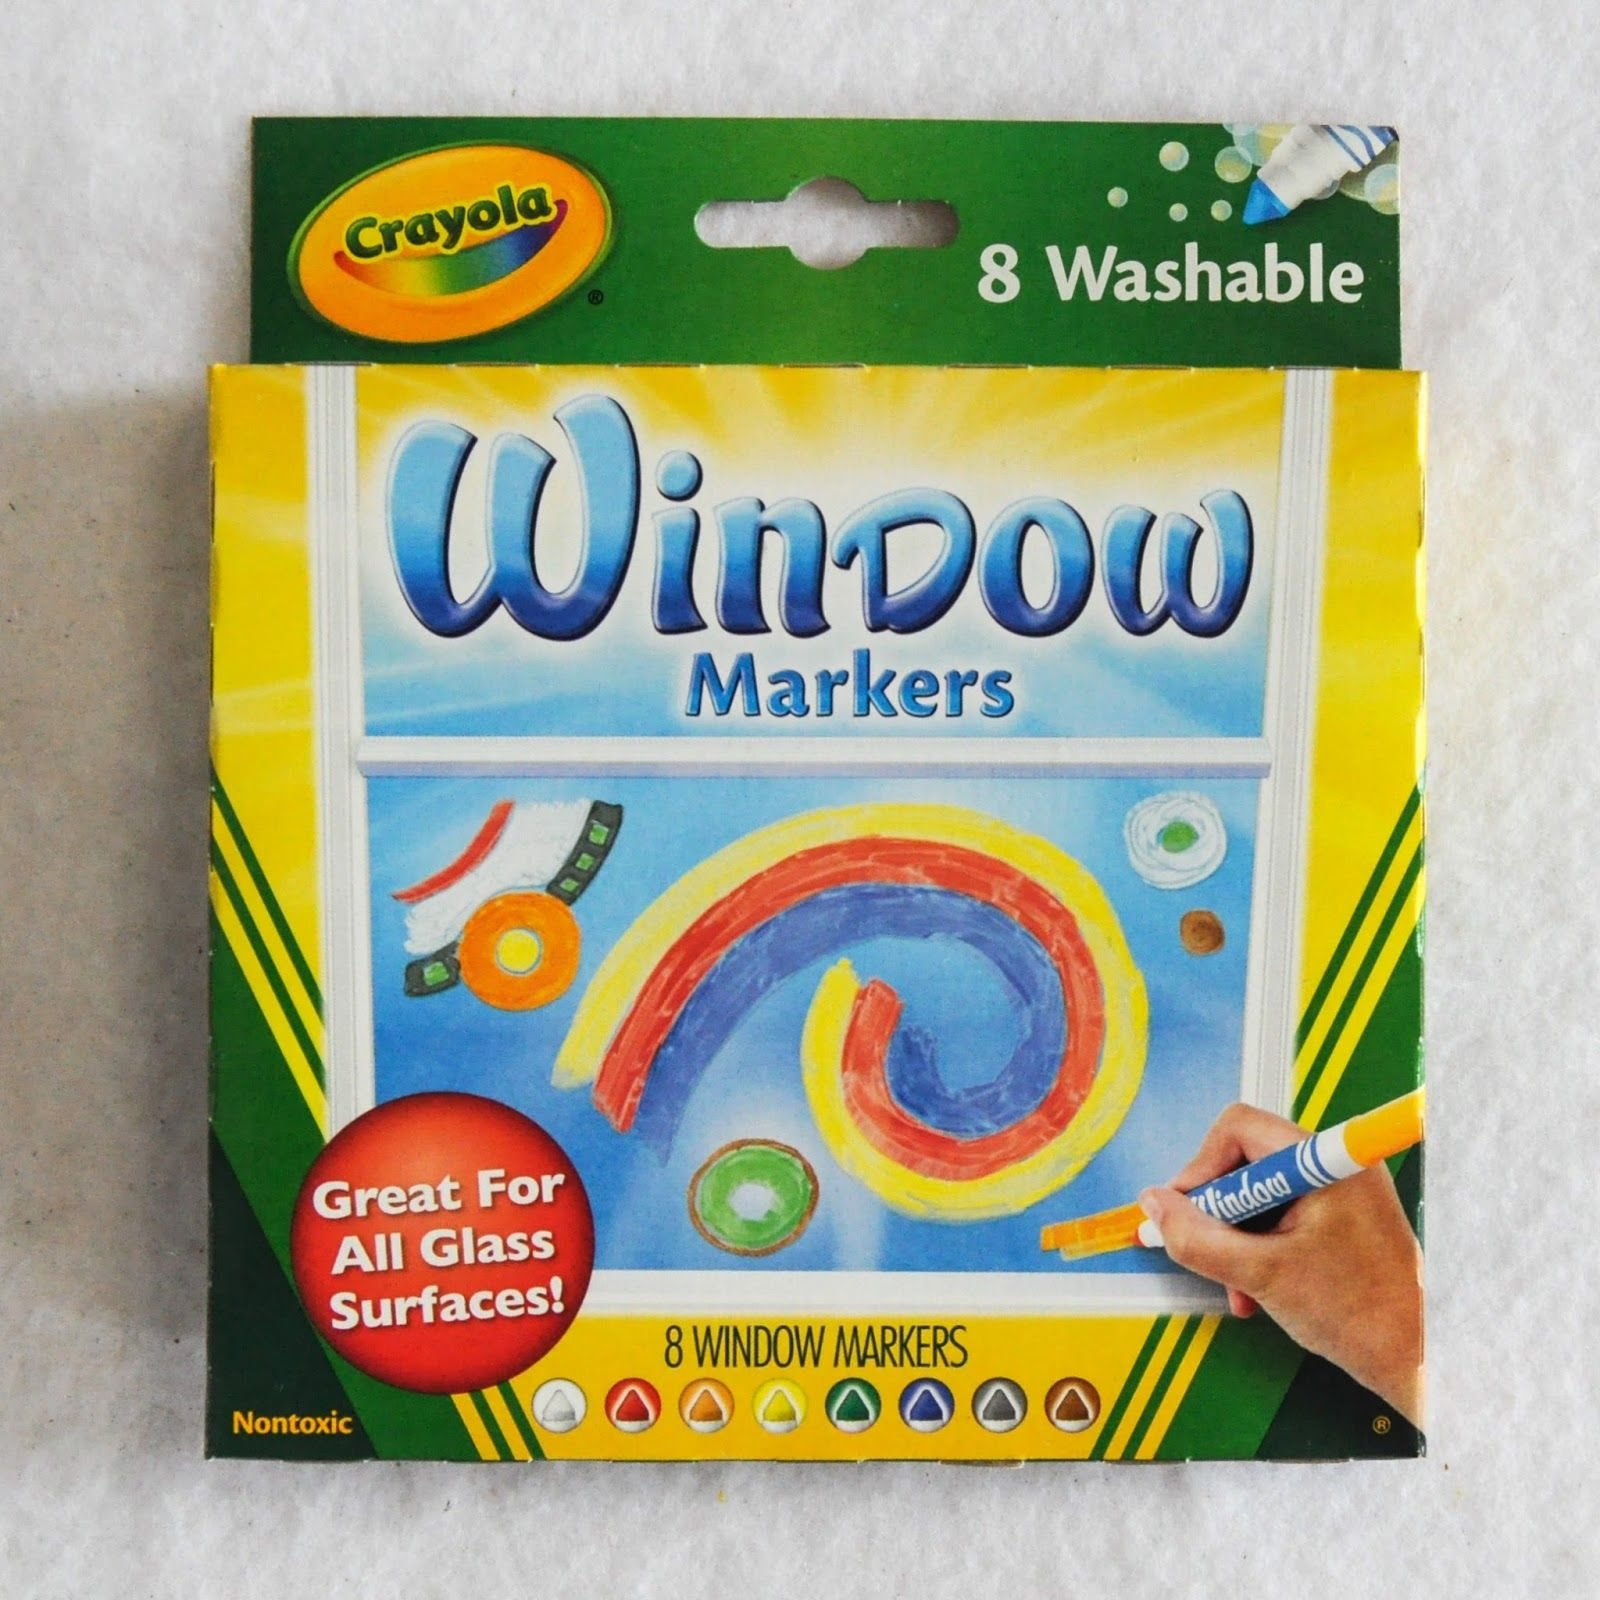 8 Count Crayola Window Markers What S Inside The Box Window Markers Crayola Window Markers Markers